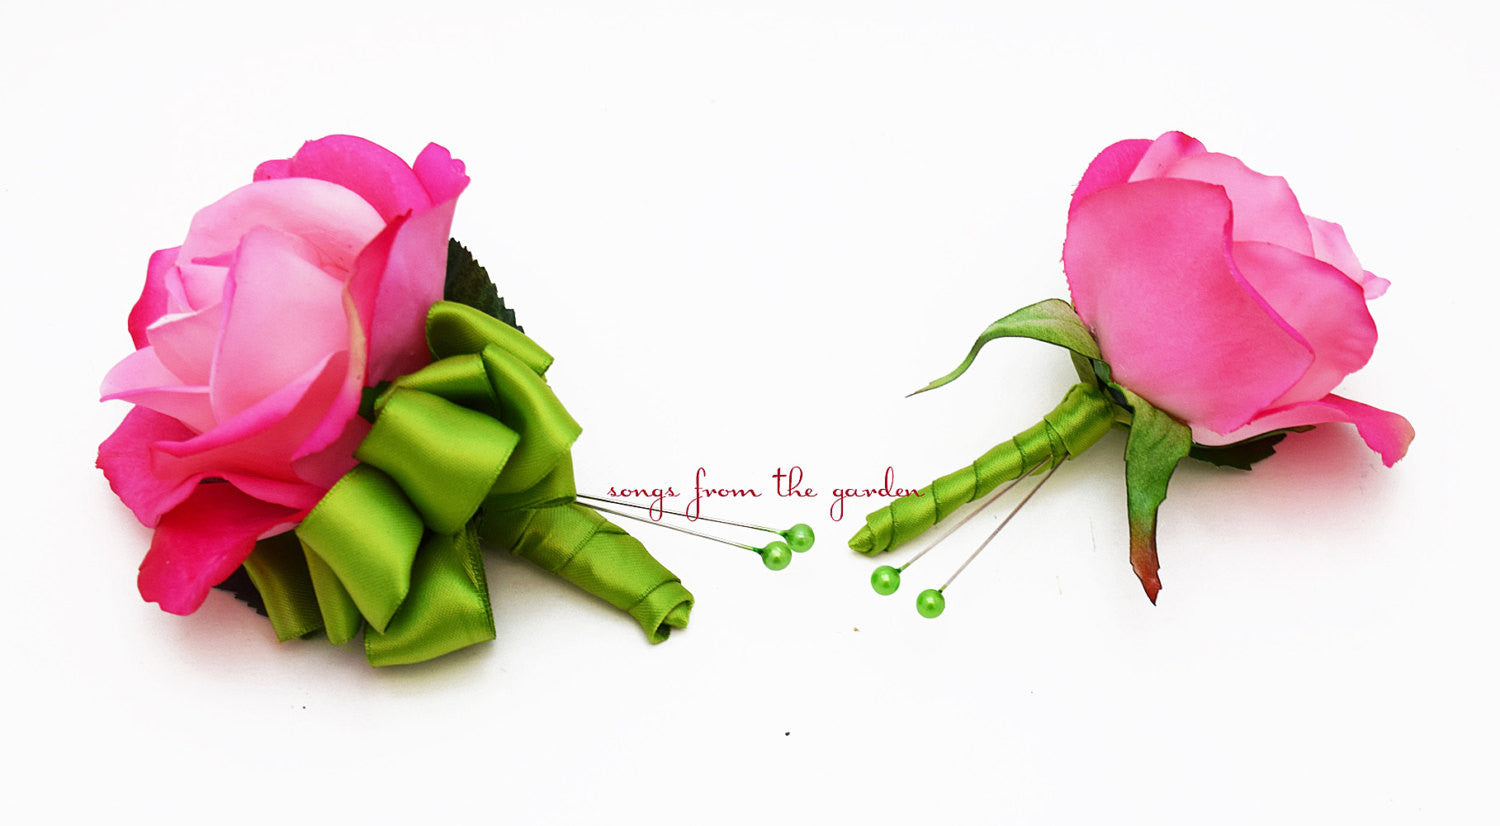 Real Touch Hot Pink Rose Boutonniere Corsage Wedding Flower Package Lime Green Ribbon - Prom Corsage